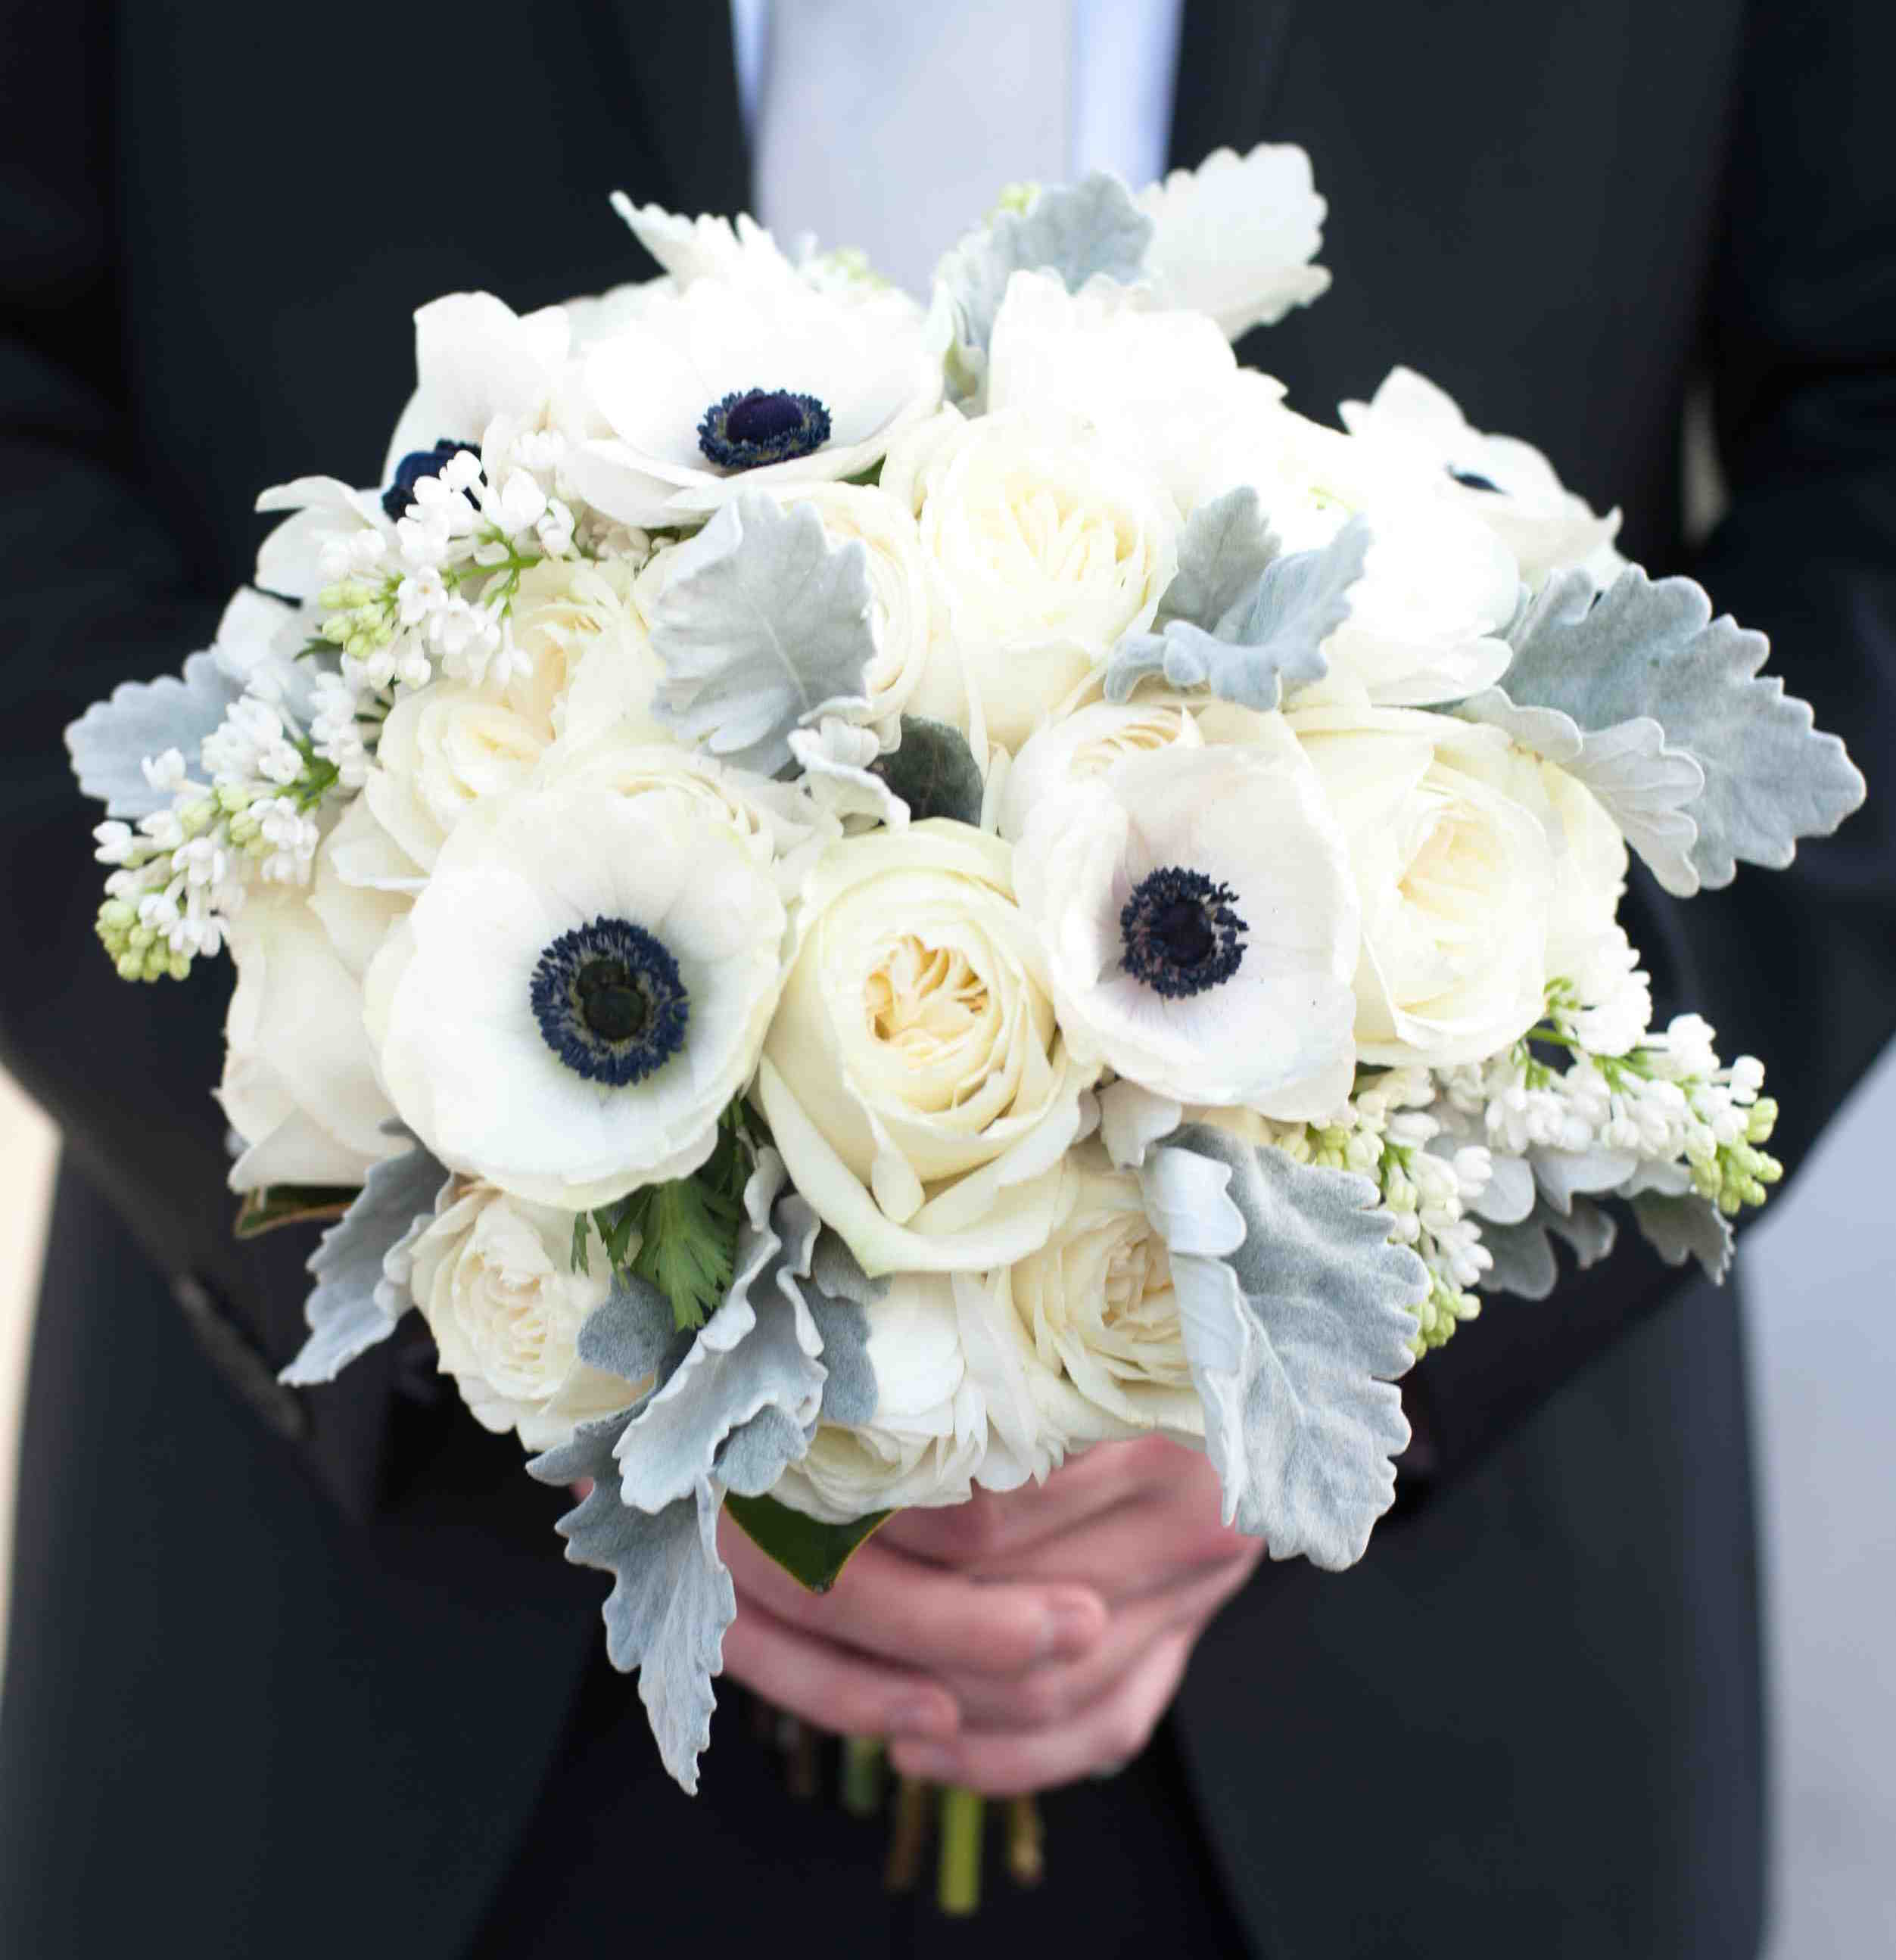 Groom holding white bouquet with anemone flower and dusty miller